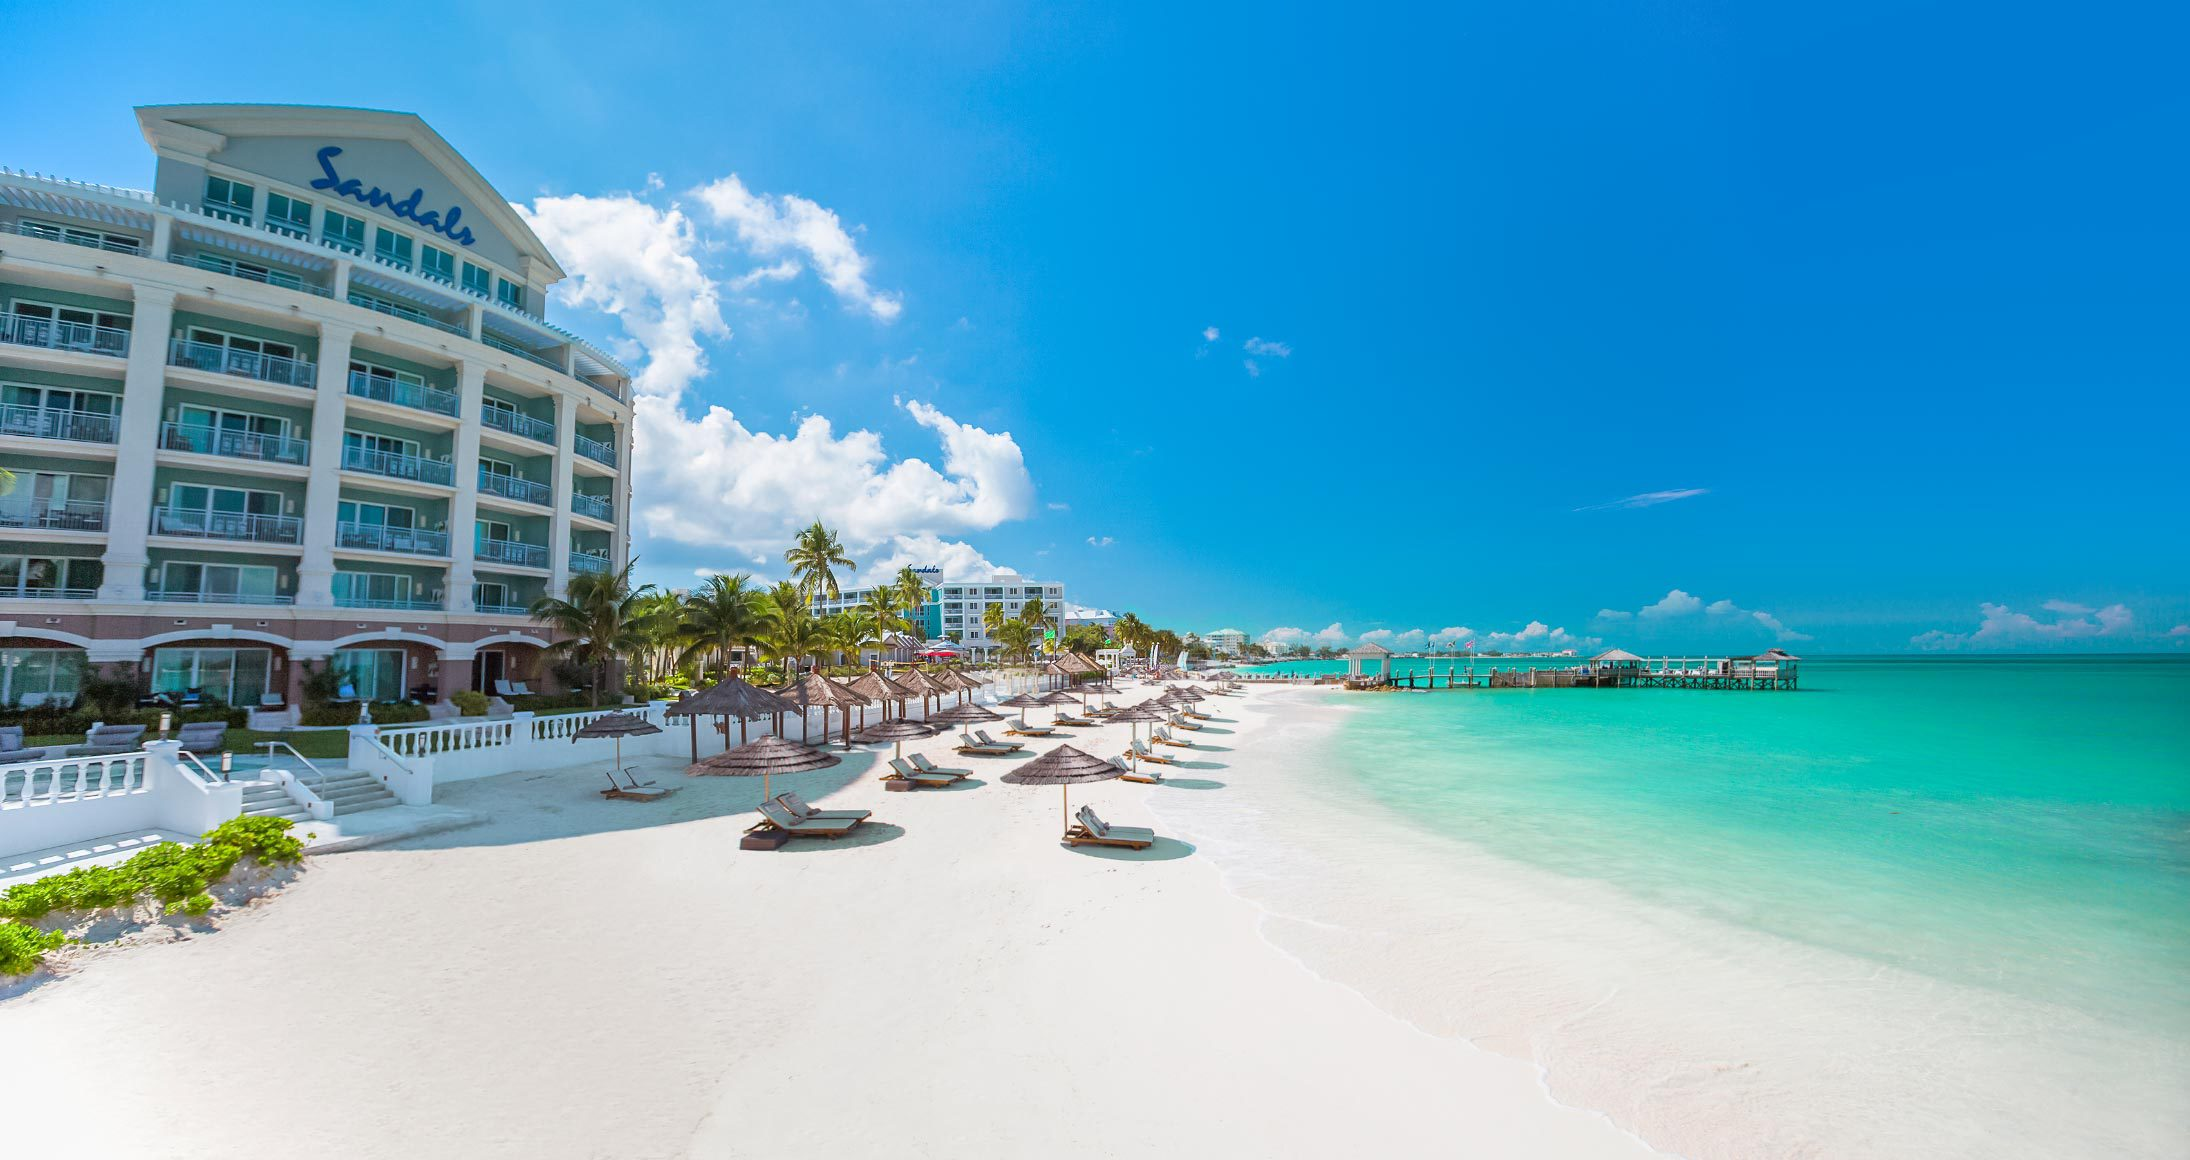 0f9c923a3768 Sandals Royal Bahamian - All-Inclusive Resort in Nassau